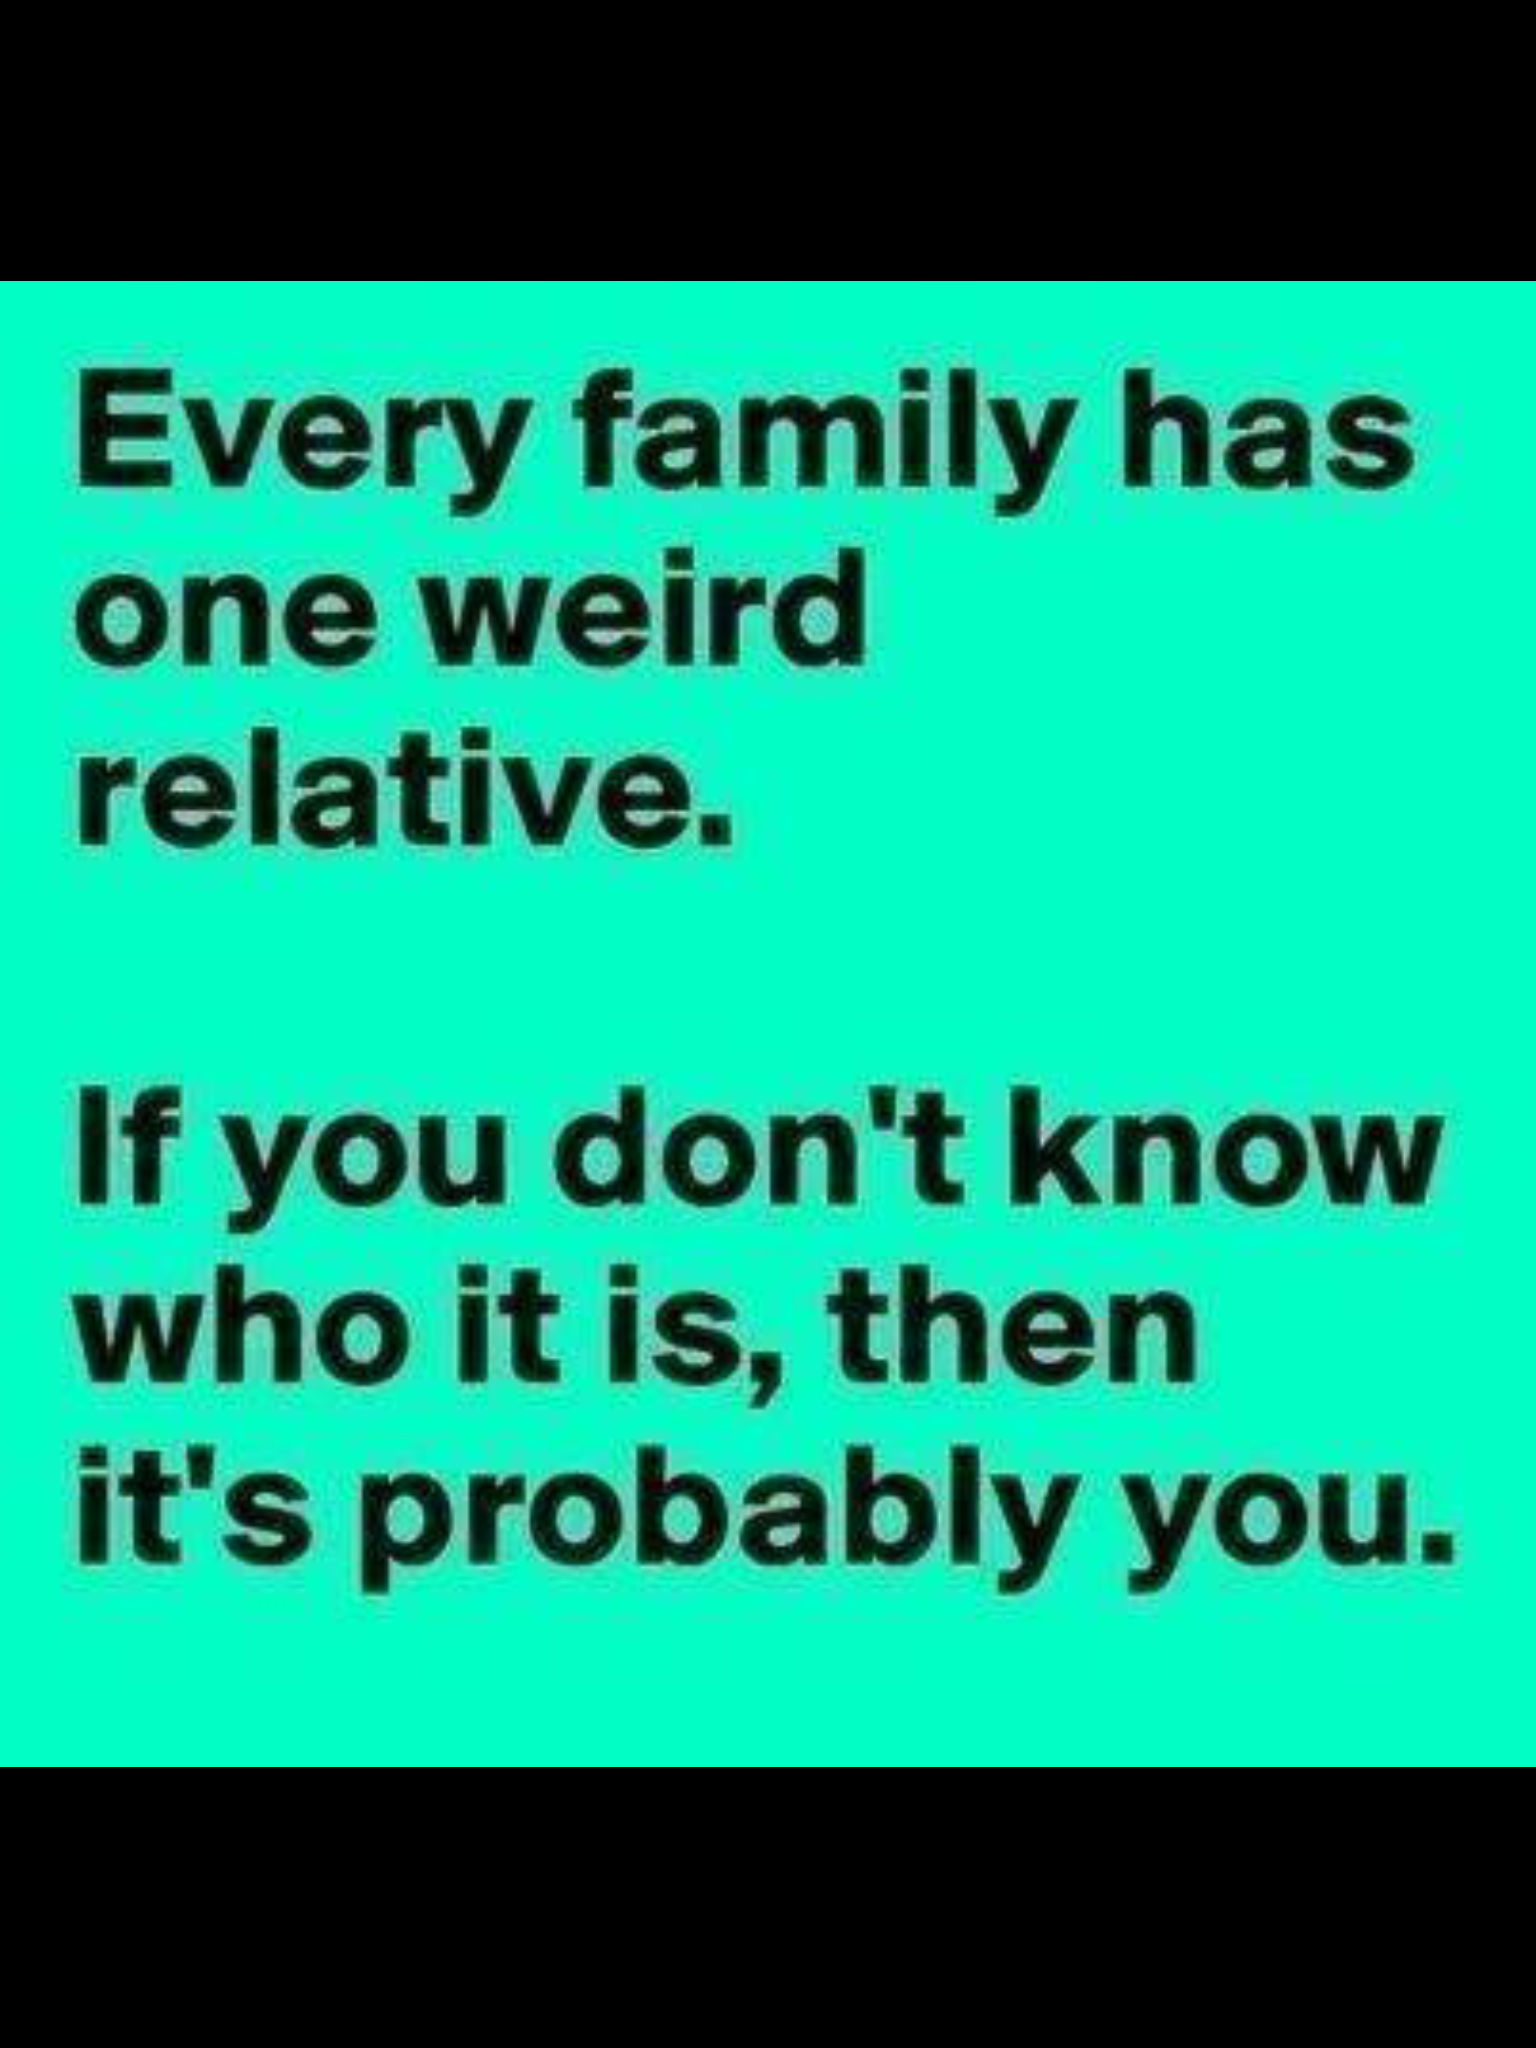 Pin By Marlaine Johansen On Humor Family Funny Funny Quotes Family Quotes